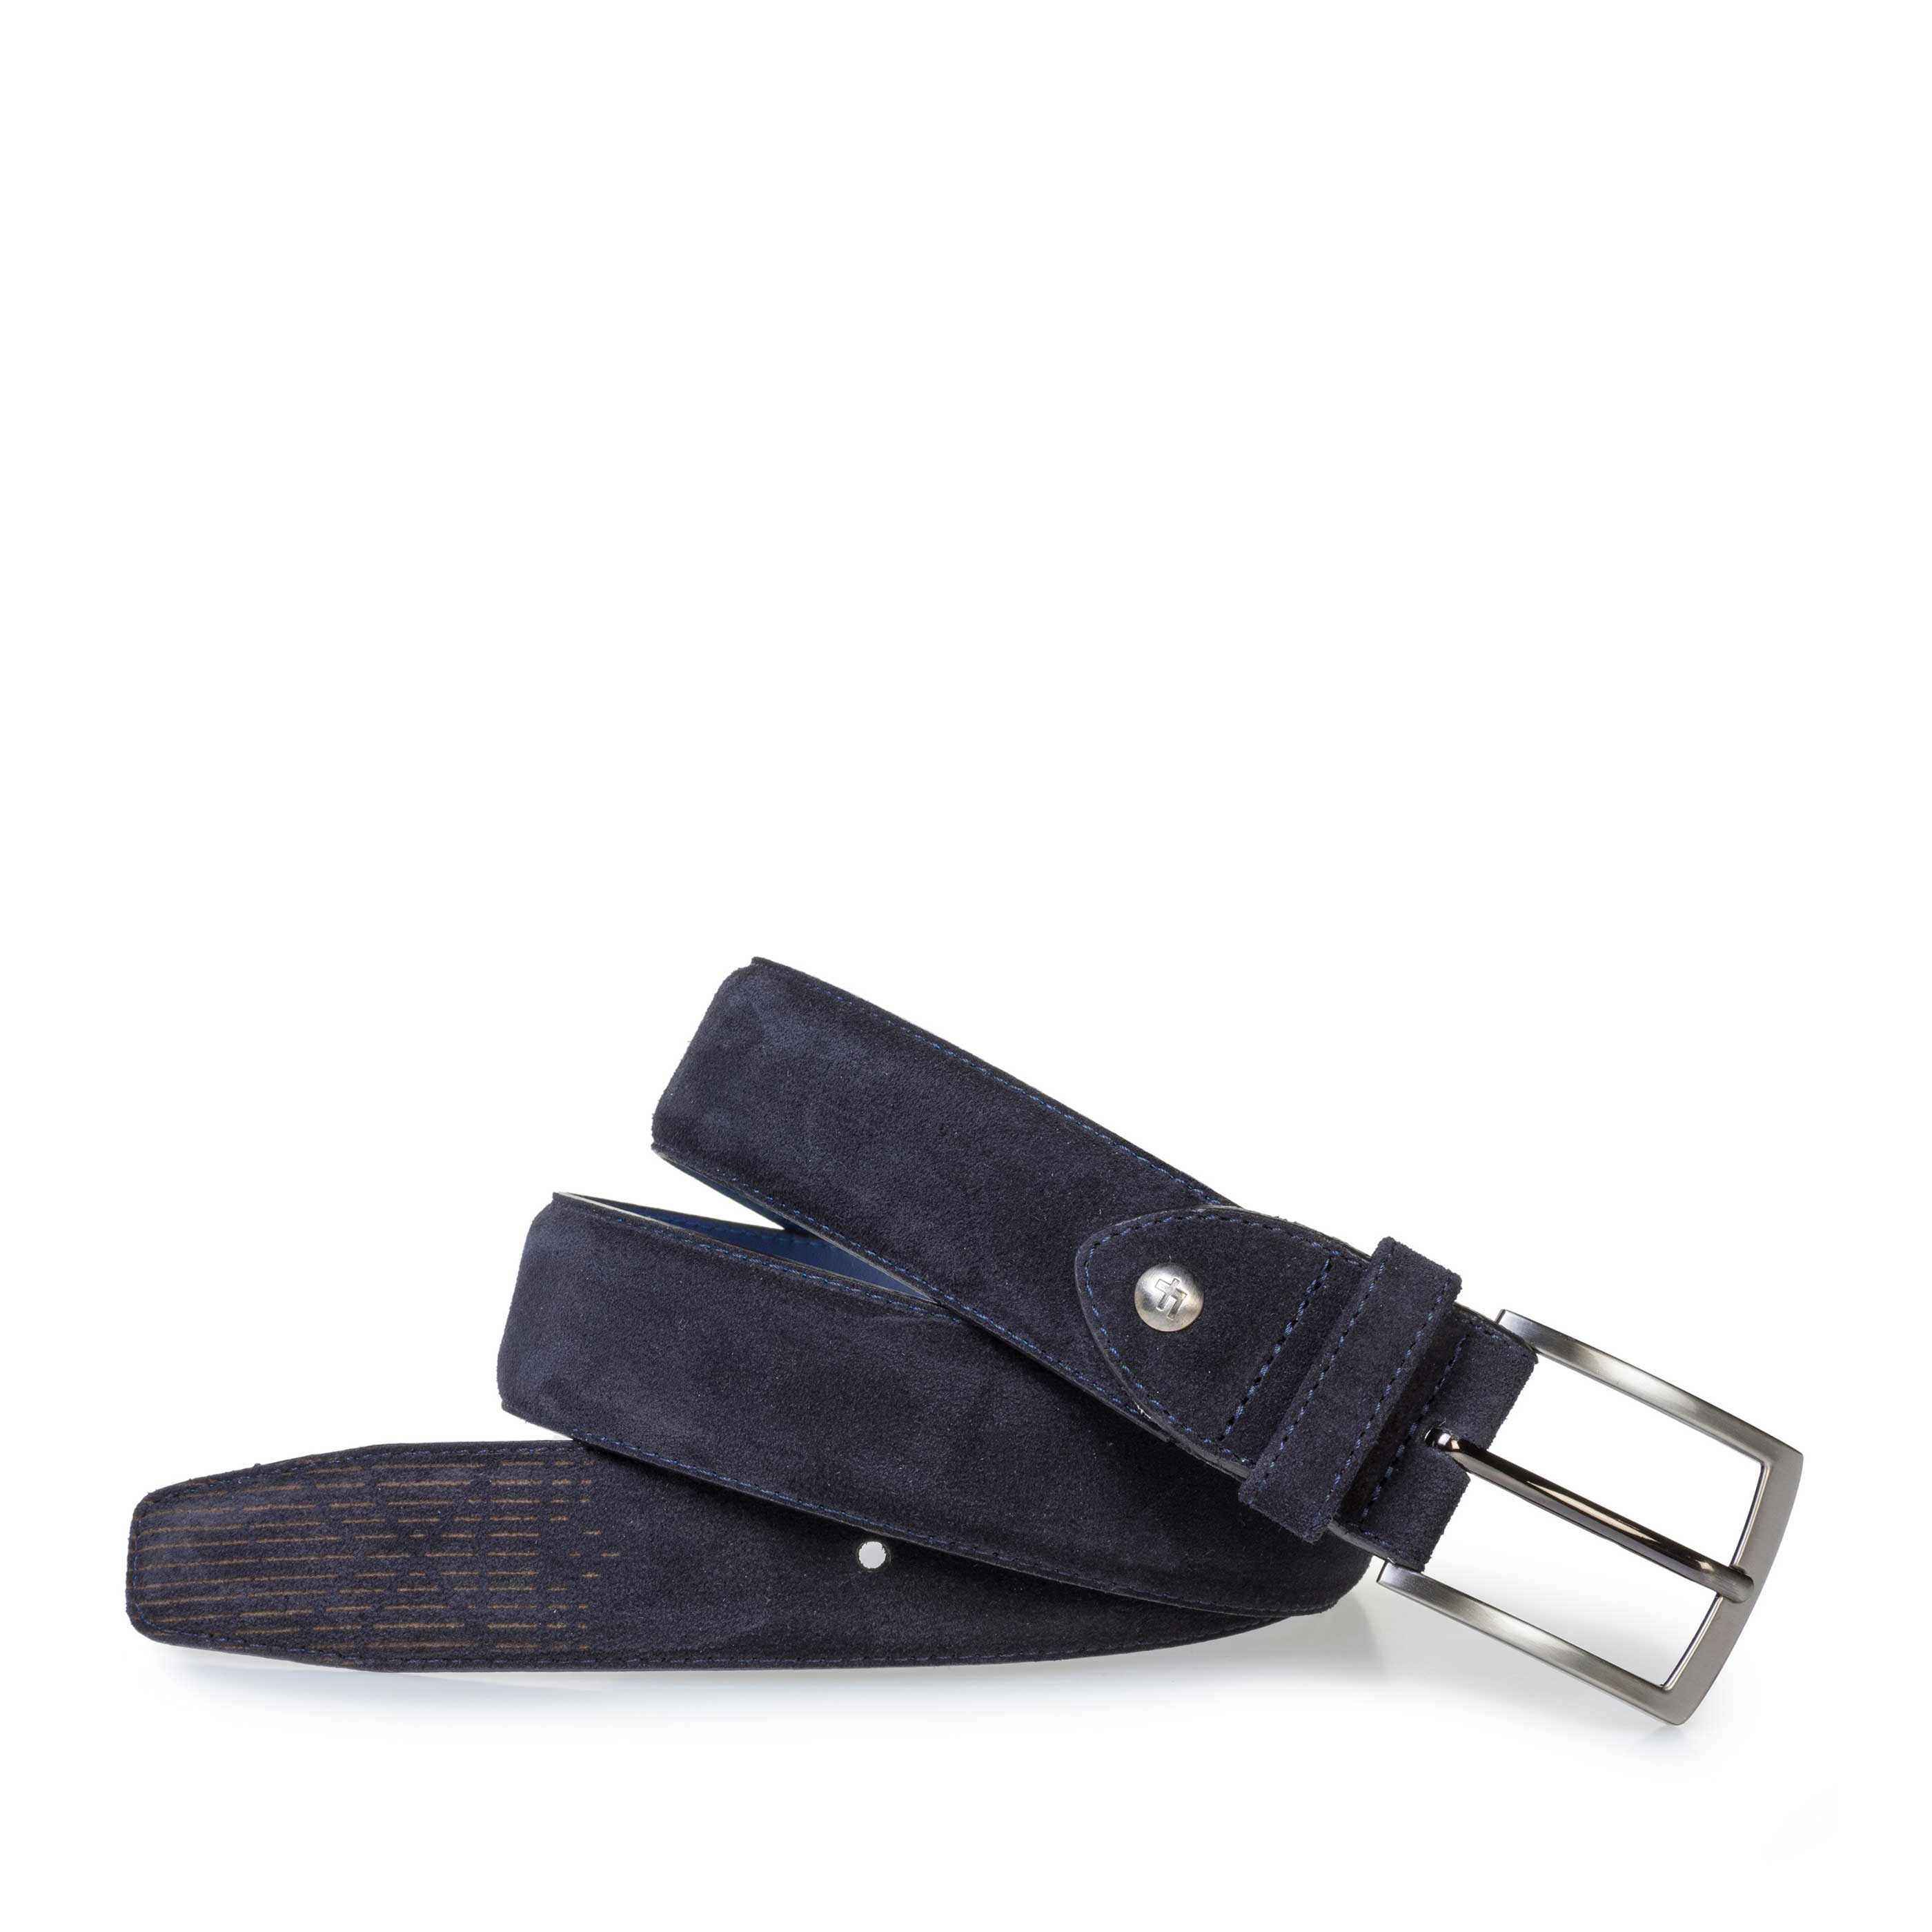 75214/04 - Dark blue suede leather belt with laser print